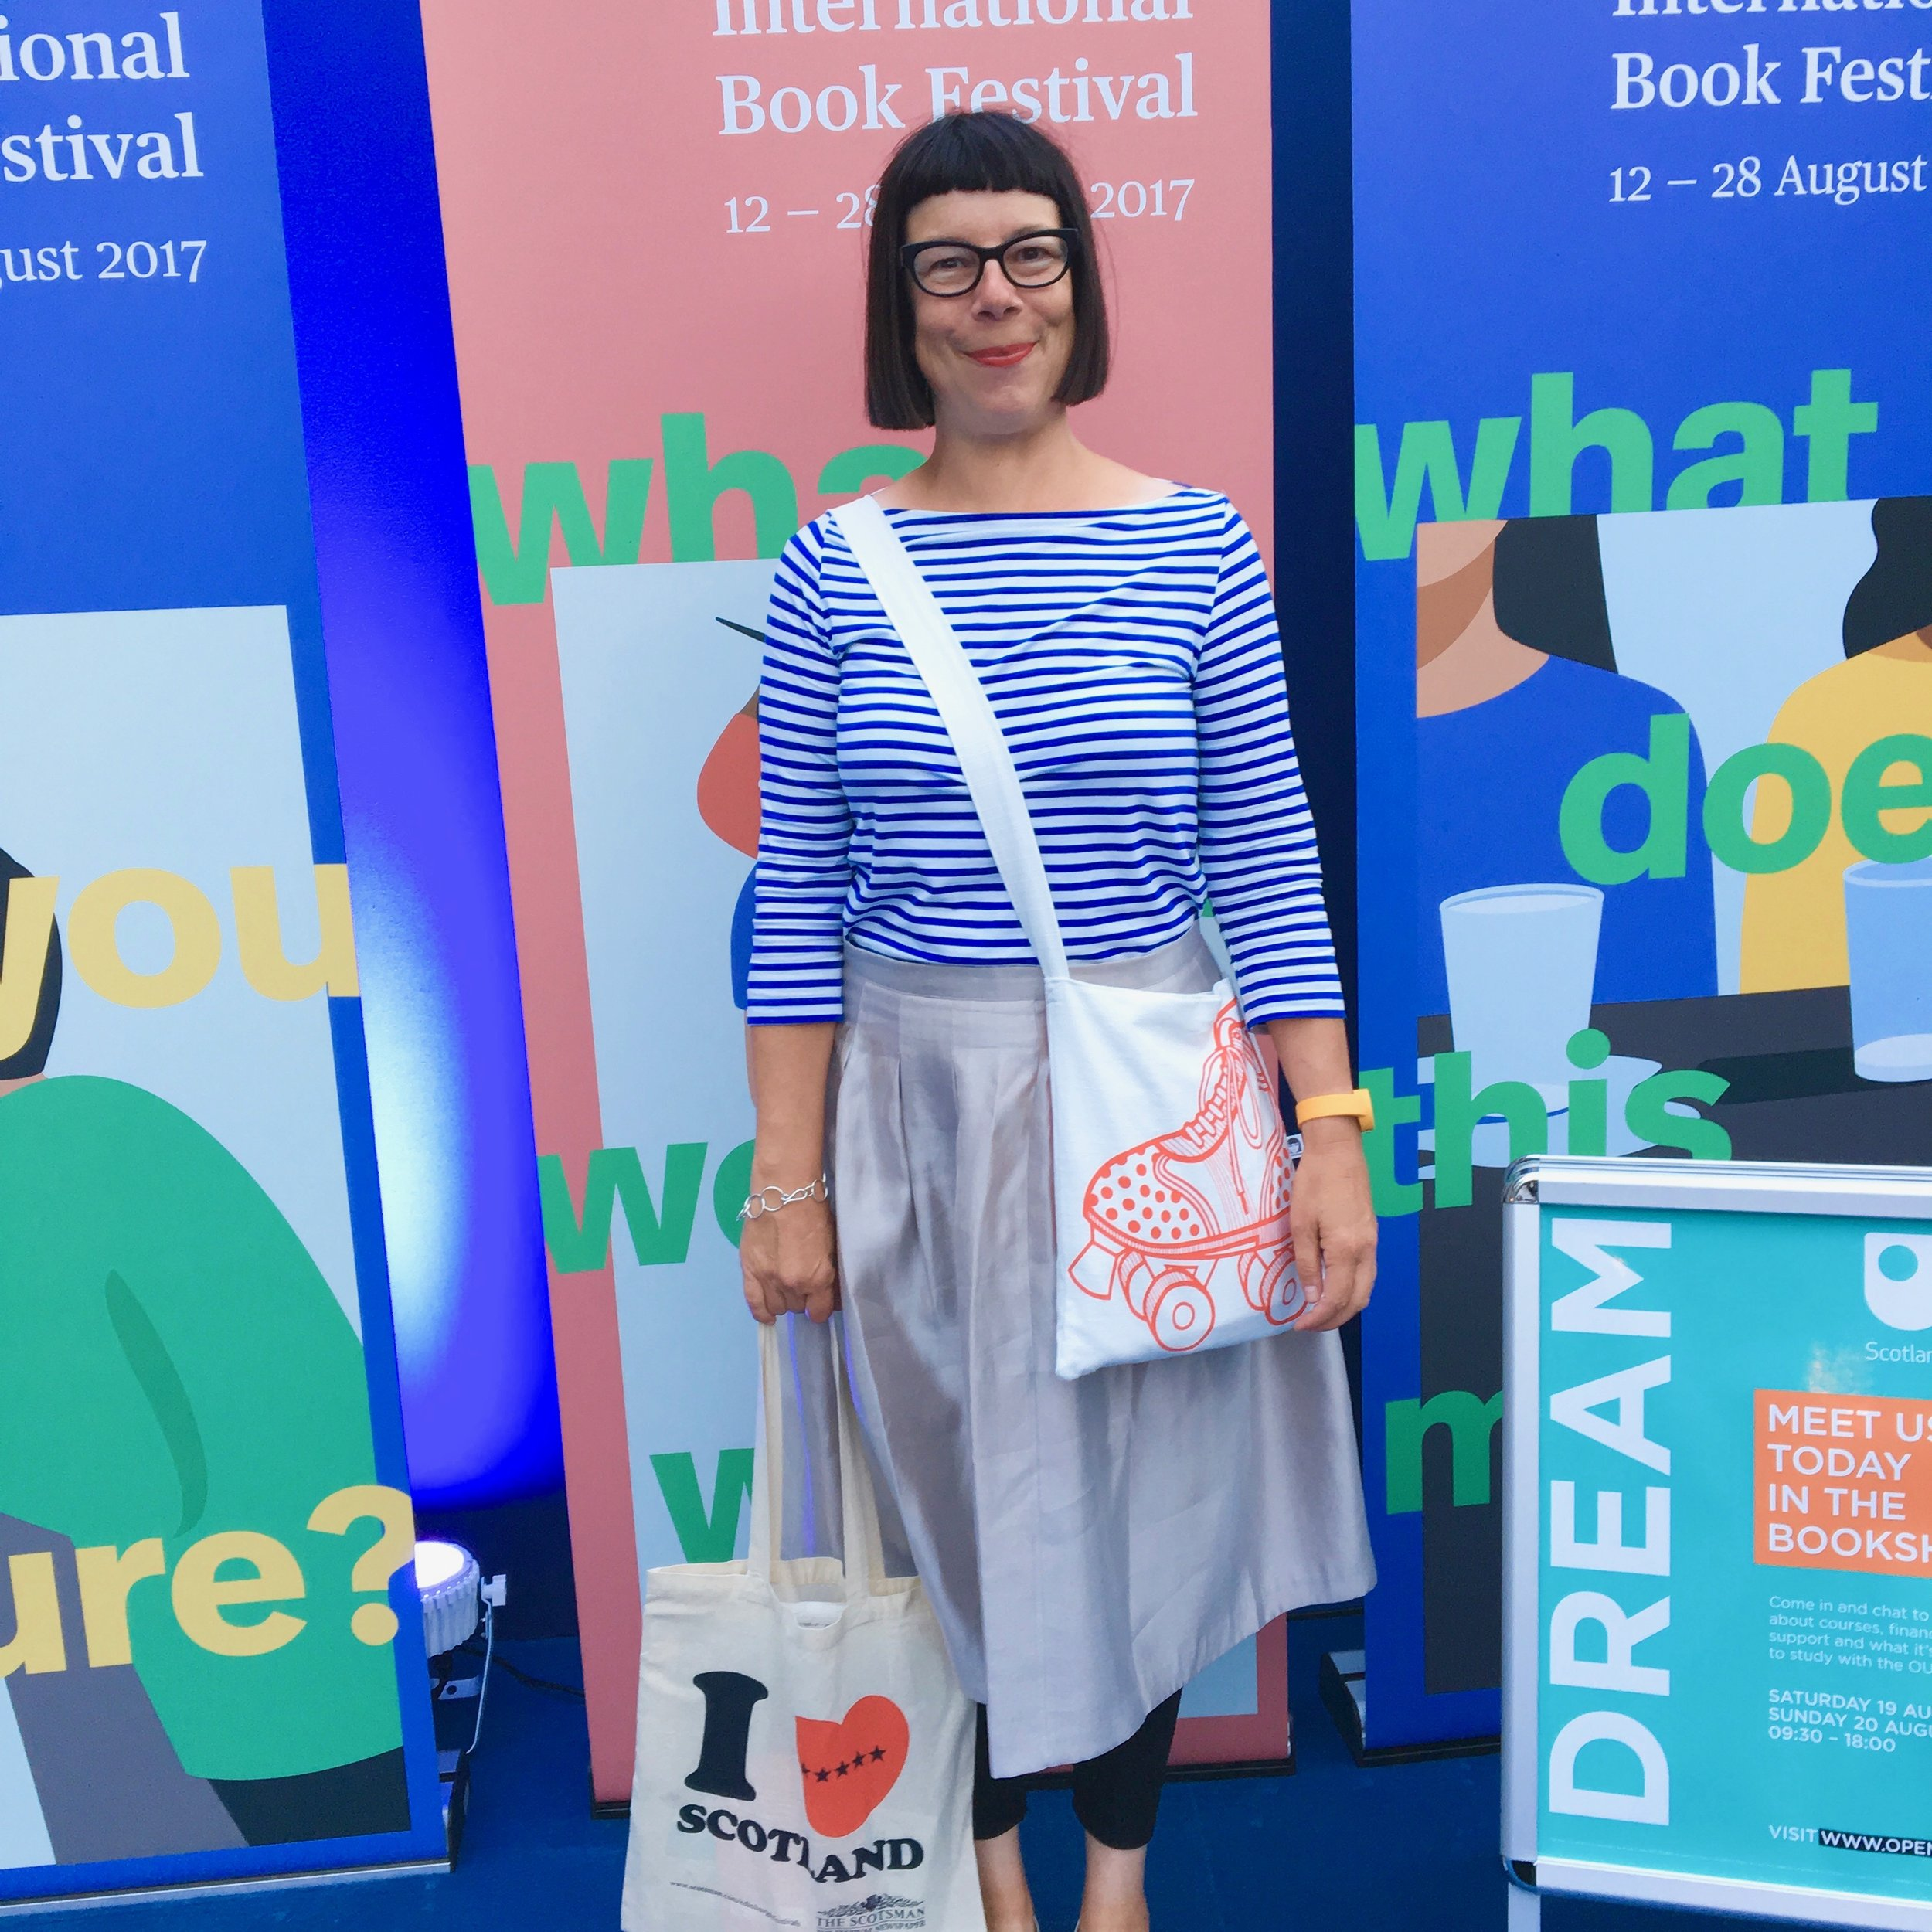 Standing in the entrance to the Edinburgh Book Festival